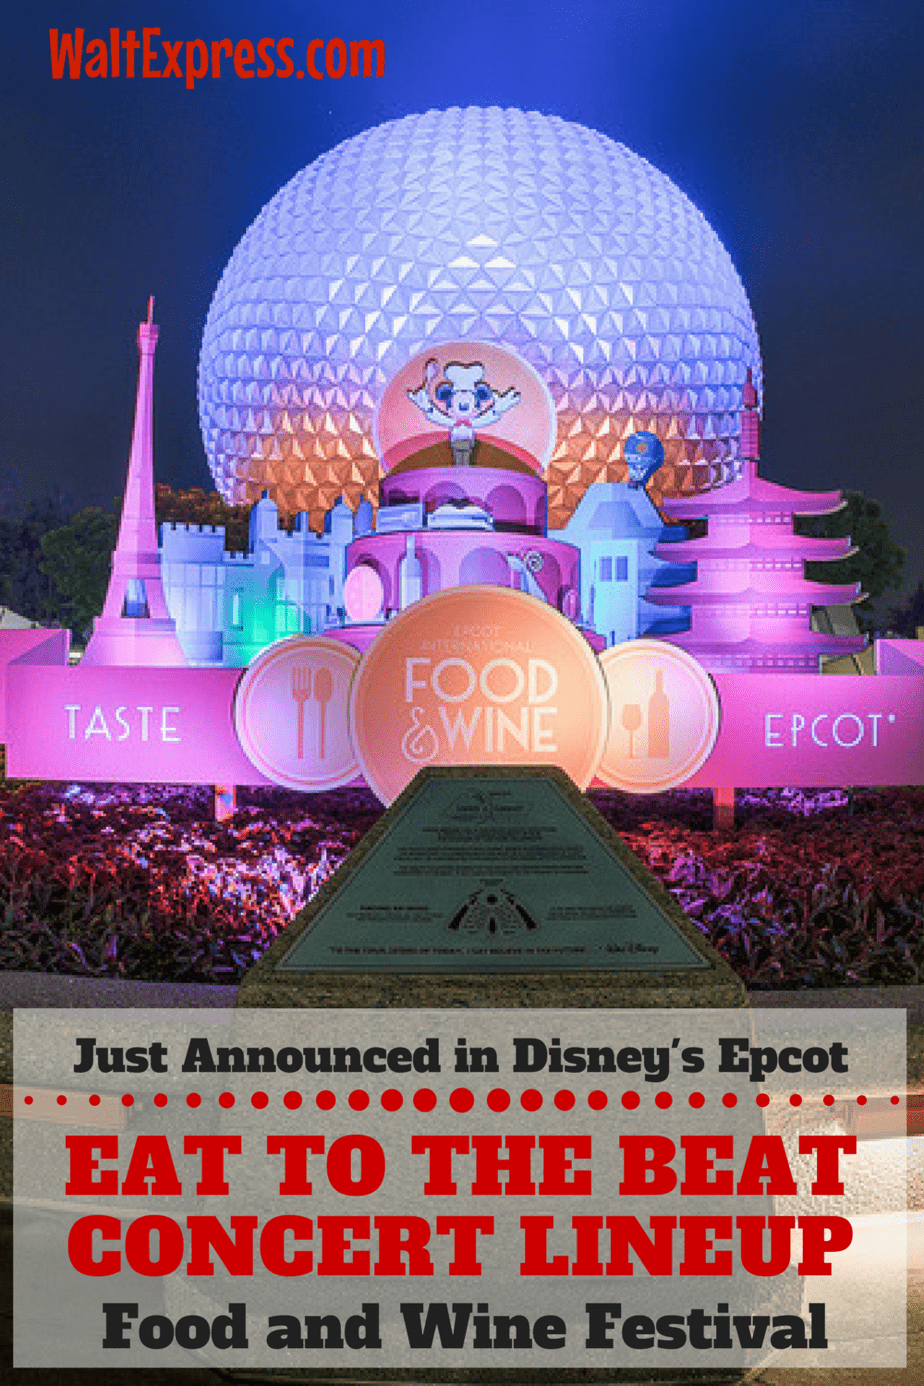 Just Released: Concert Lineup for Epcot's Eat To The Beat Concert Series